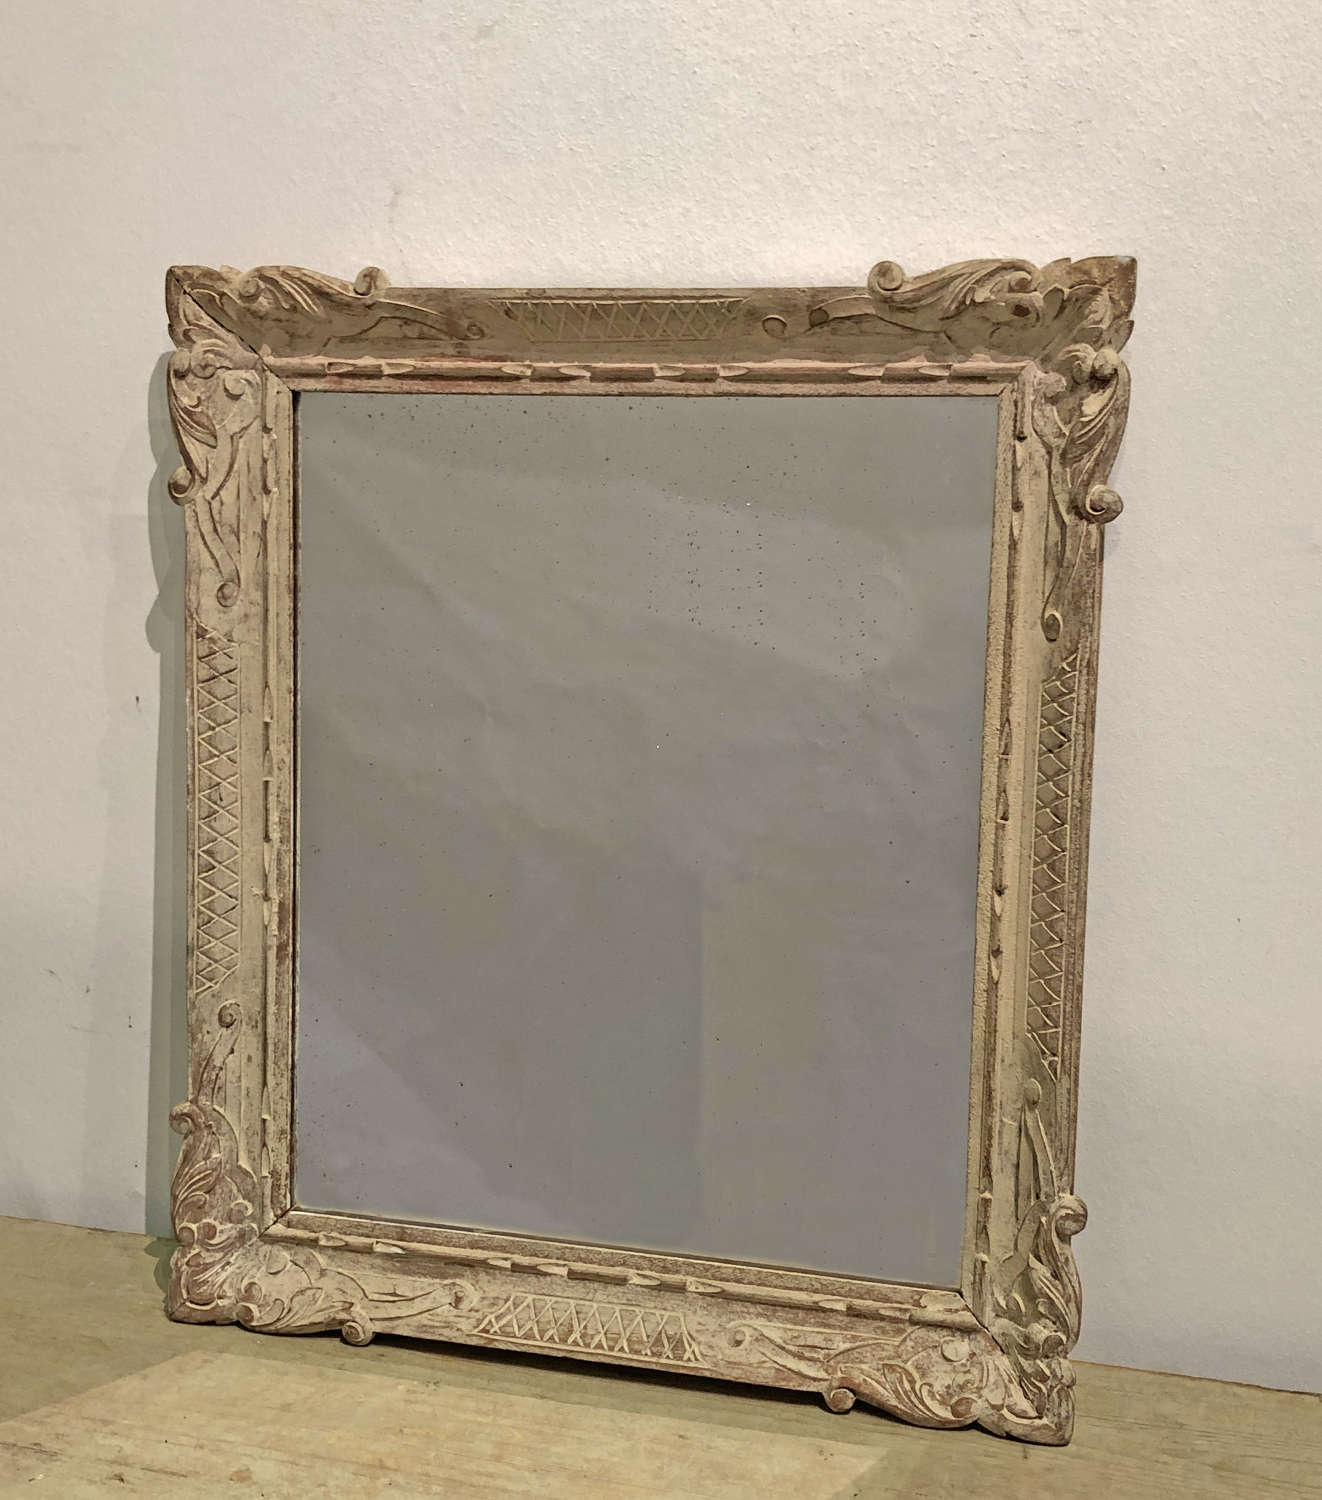 Small French carved mirror with remains of old paint - circa 1900